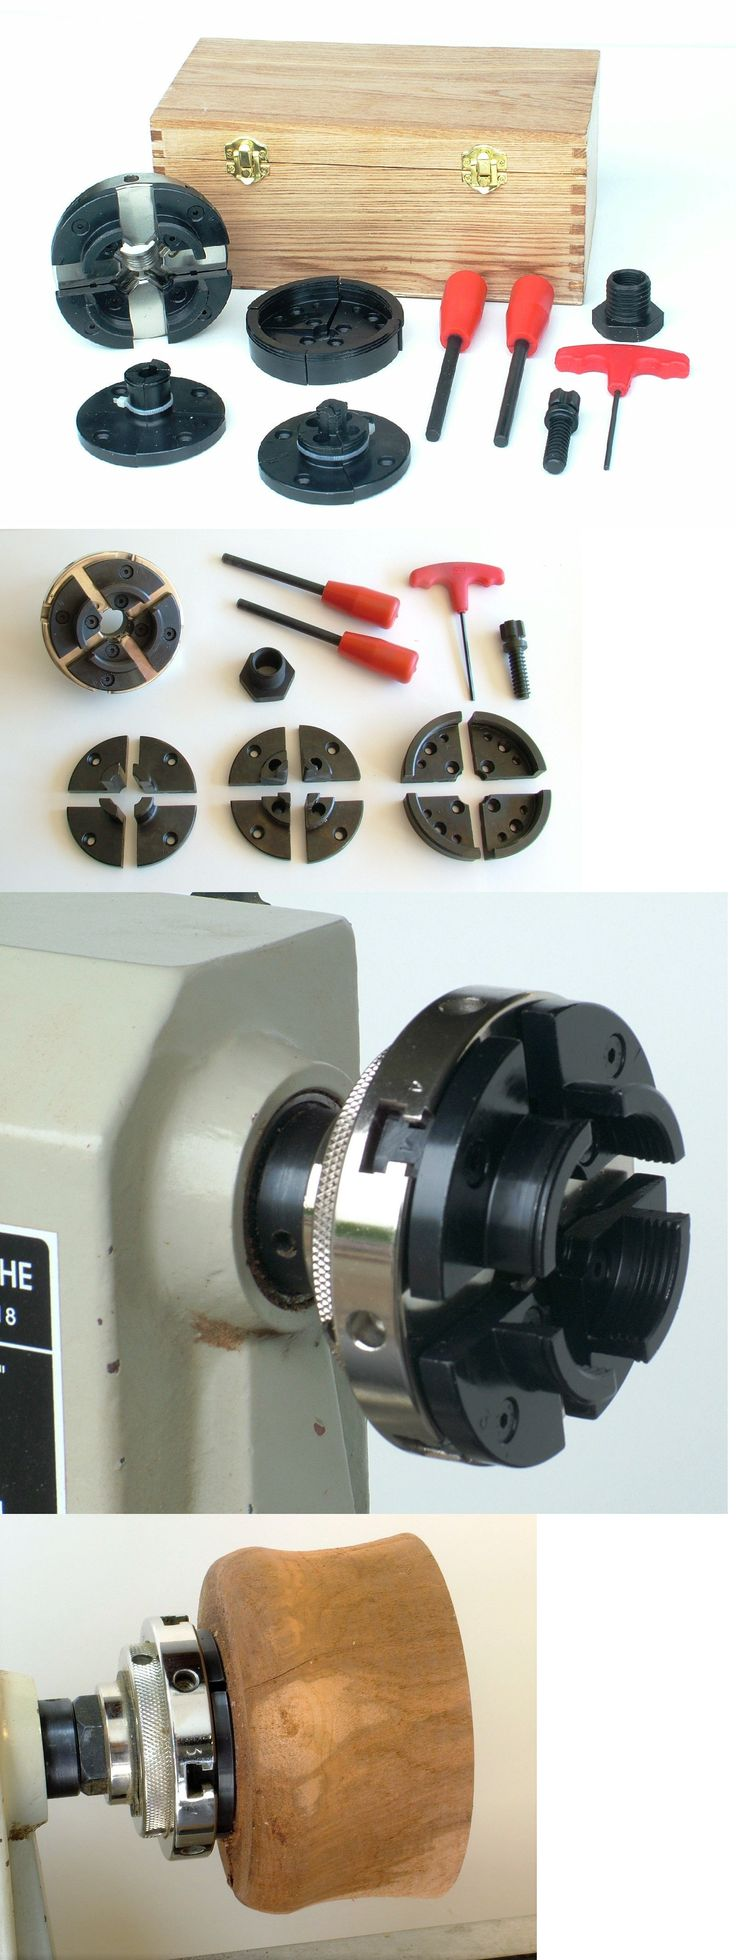 Lathes and Accessories 42282: Lathepro Wp0201 4-Jaw Self-Centering Wood Lathe Chuck System -> BUY IT NOW ONLY: $149.99 on eBay!